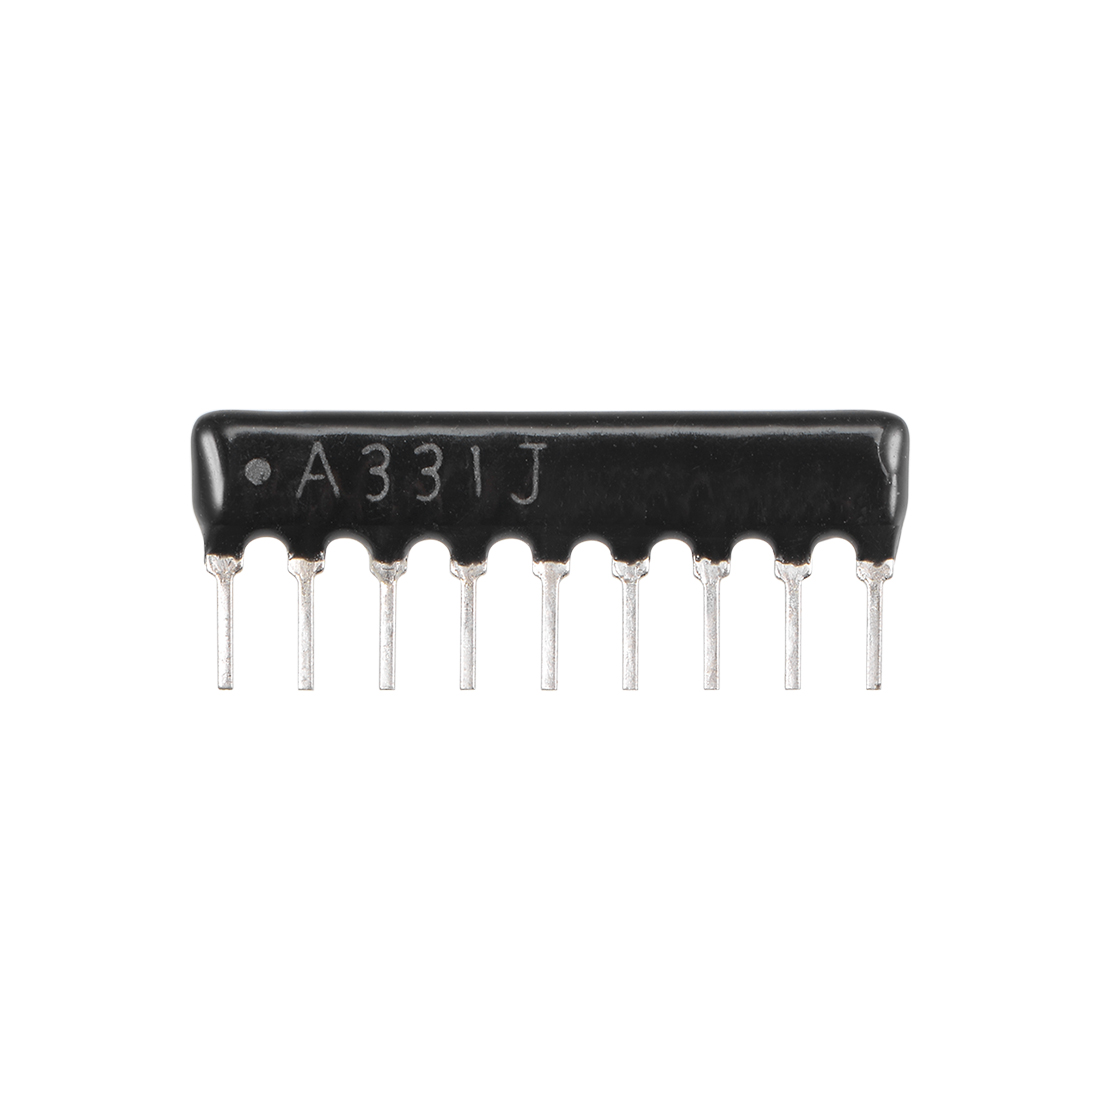 330 Ohm Resistor Network 1/8W SIP-9 Array 2.54mm Bussed Type 5% Tolerance 10pcs